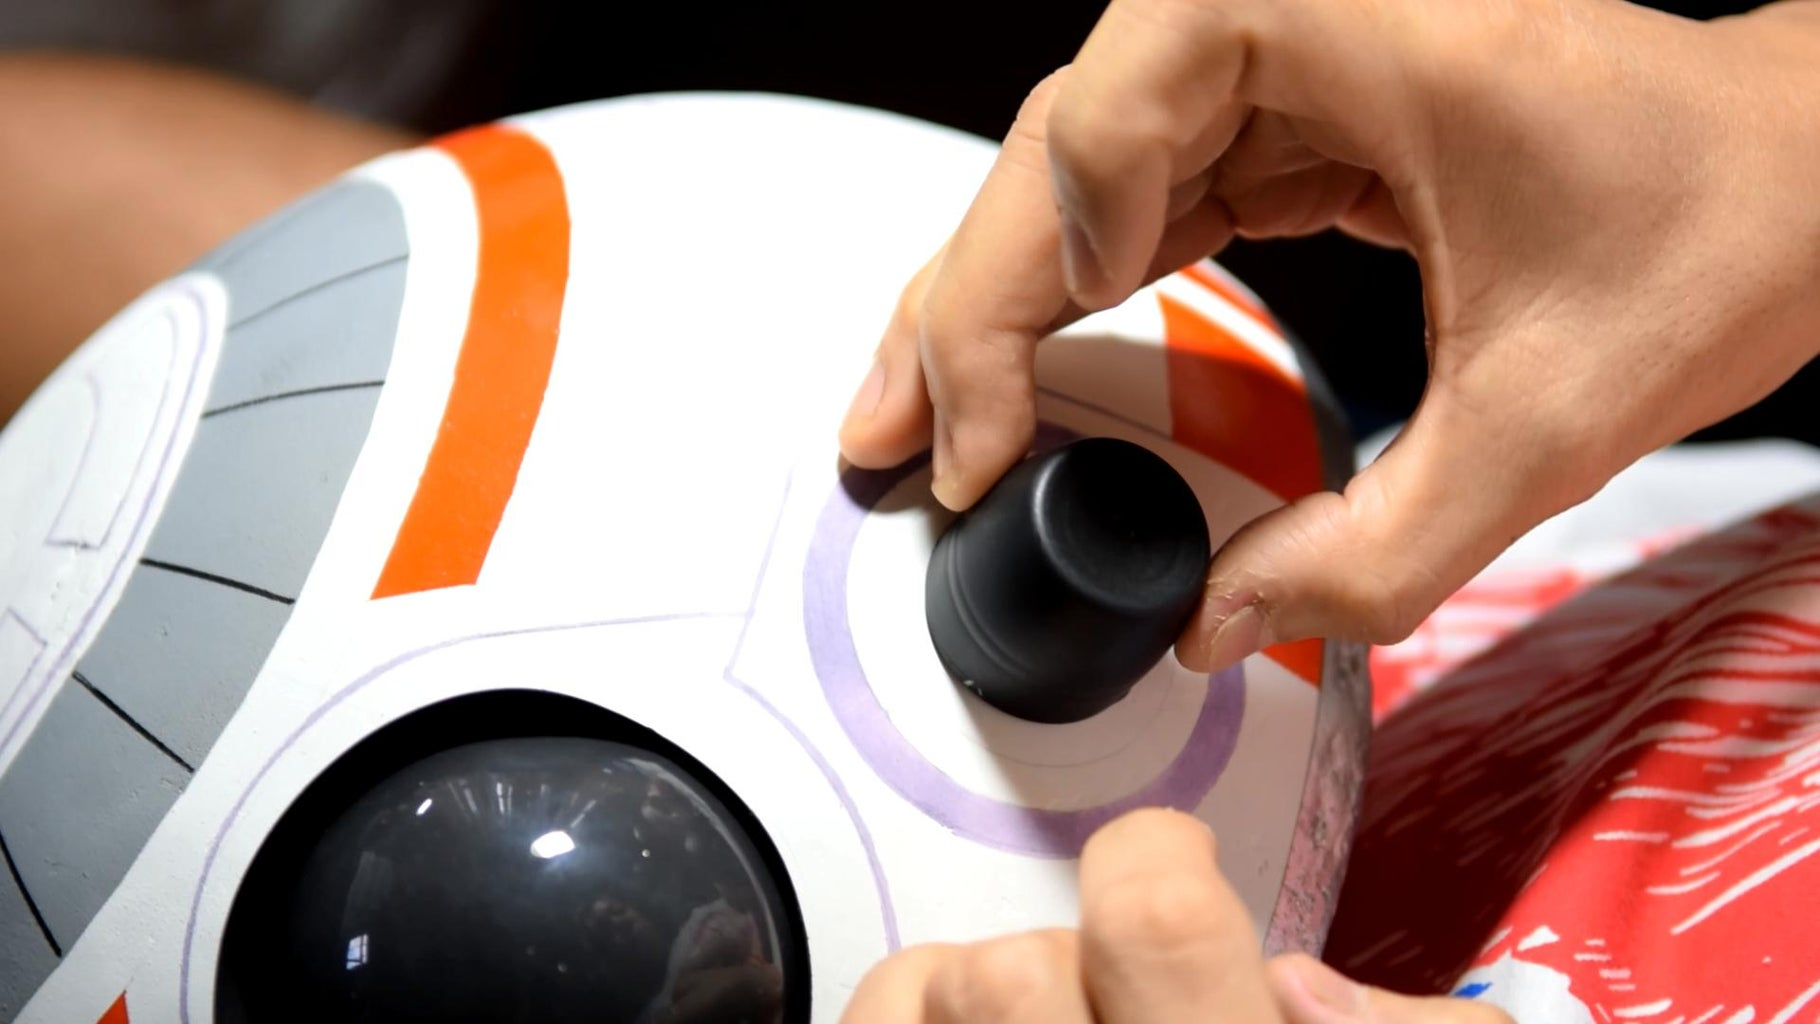 More Parts and Details for BB8's Head